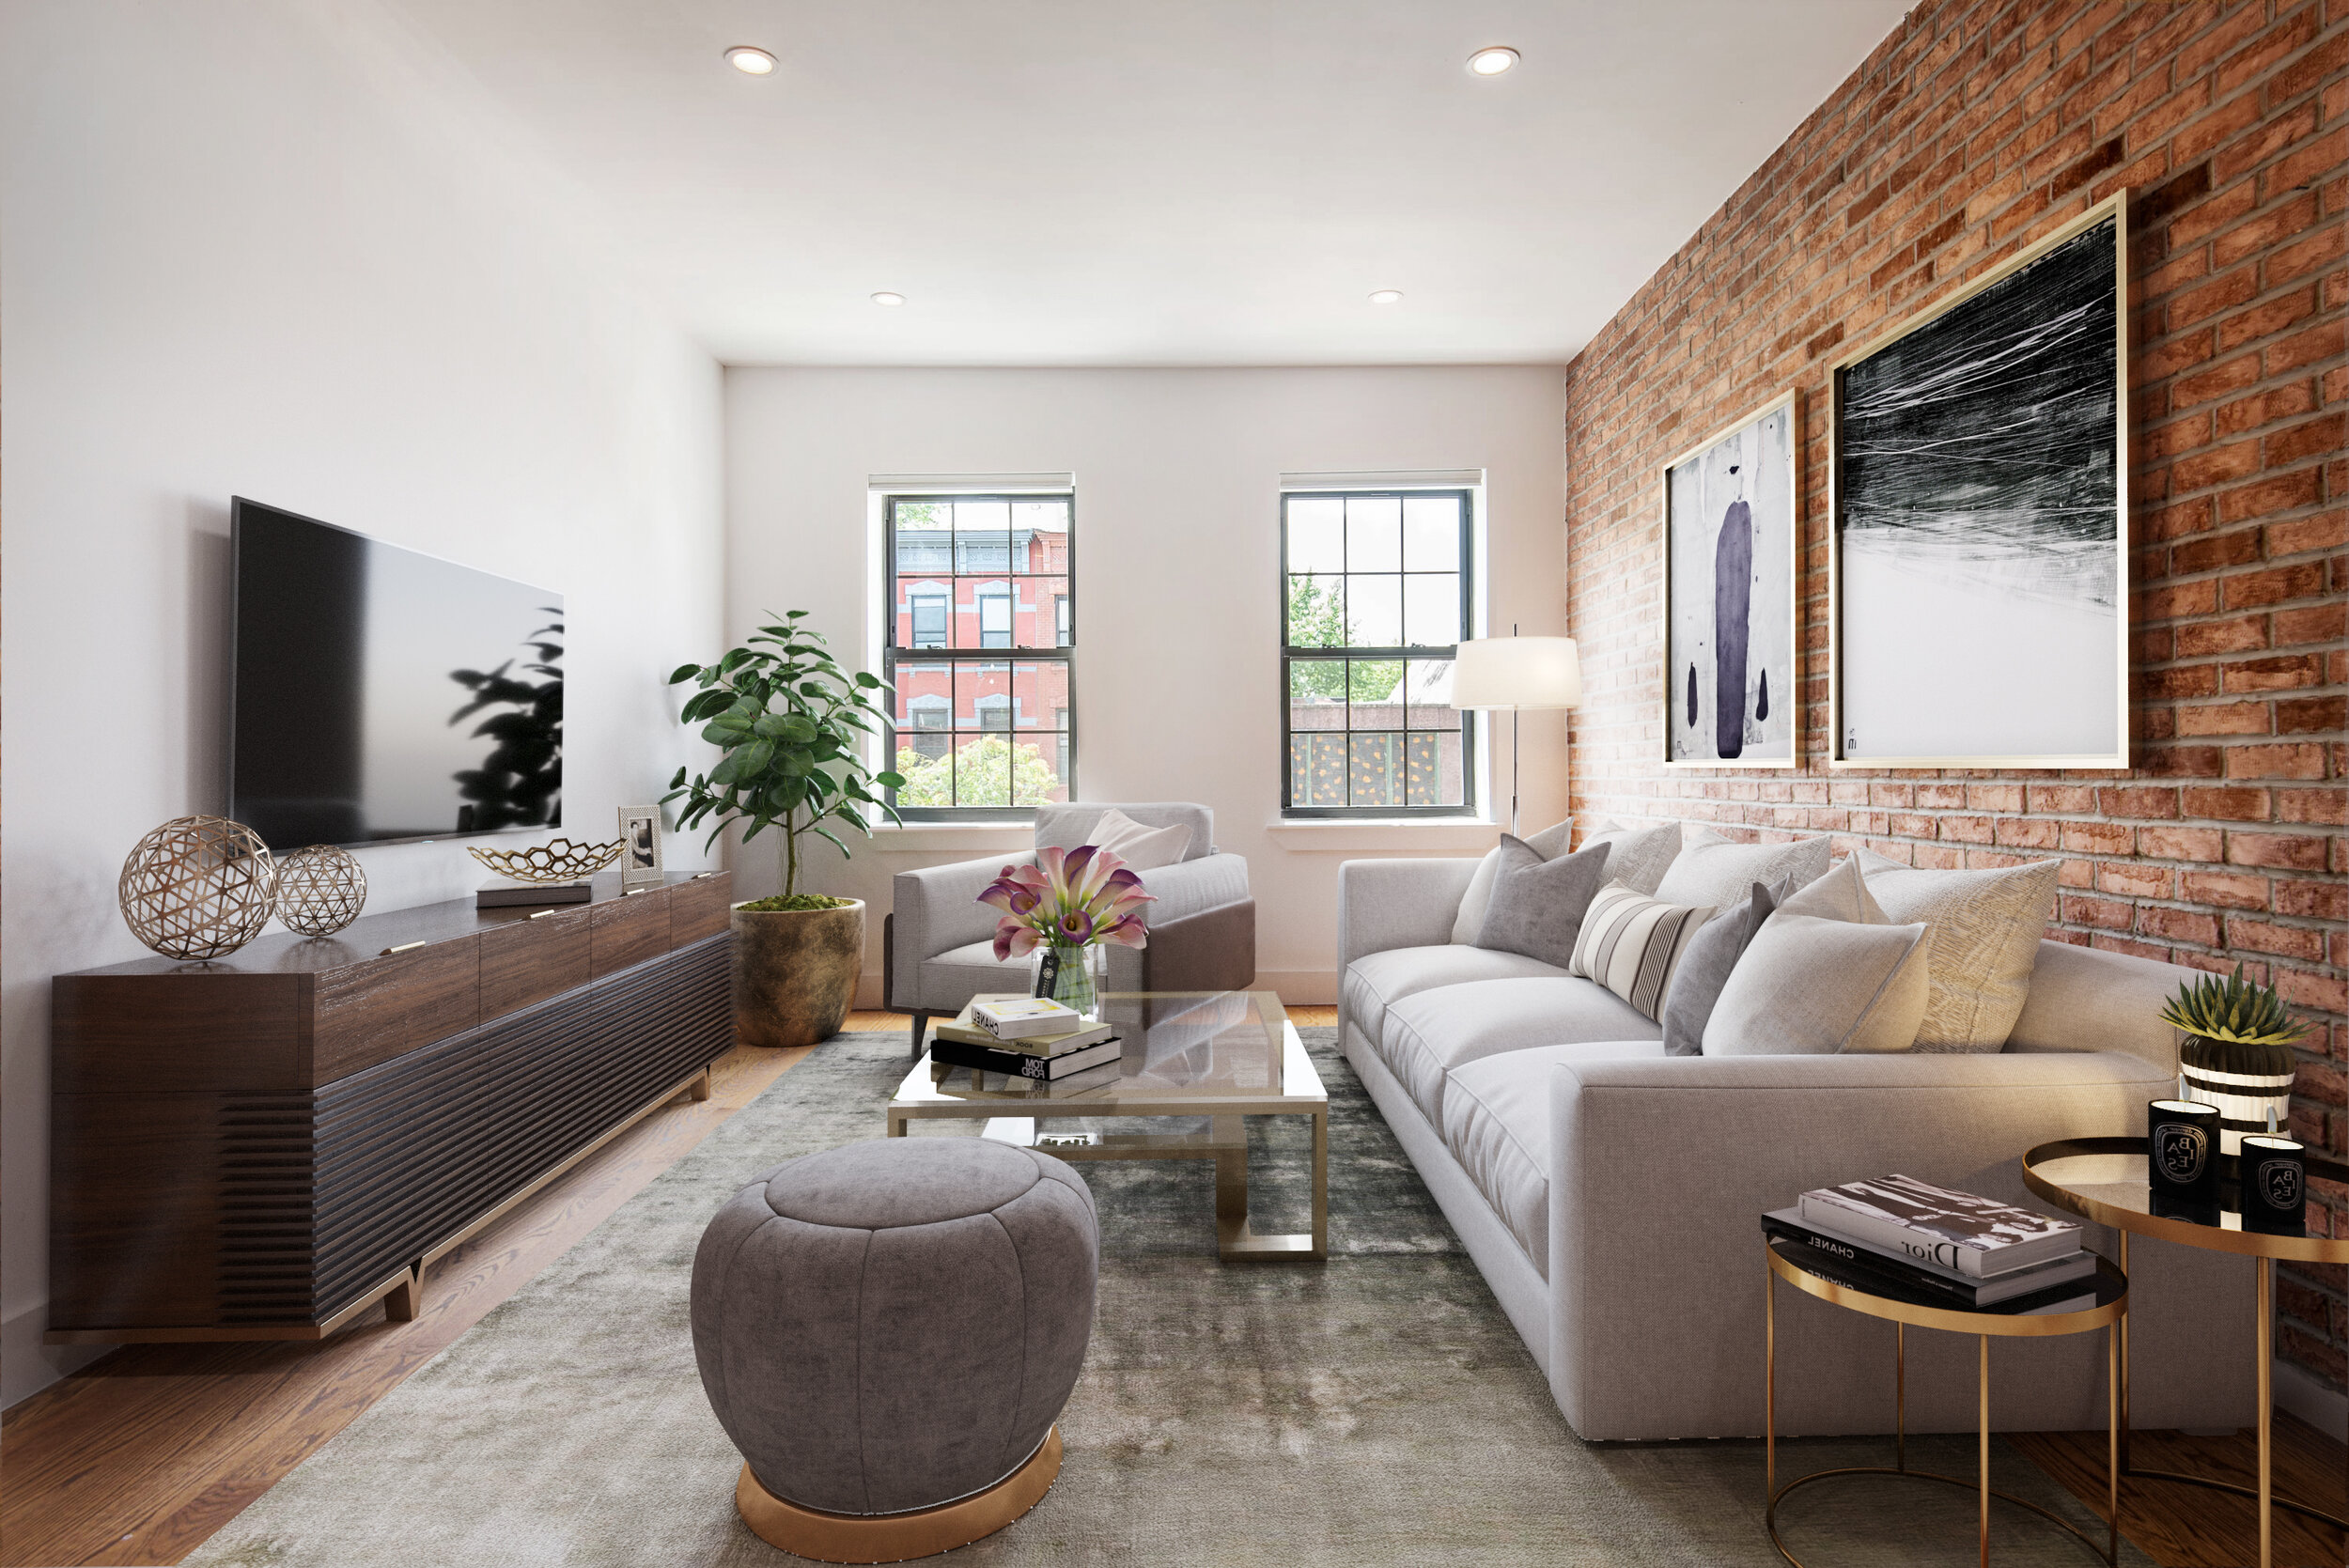 679 Quincy St #3 - Bedstuy | Brooklyn    3 Bedroom // 2 Bath Days on Market — 58 Sold Price:    $845,000